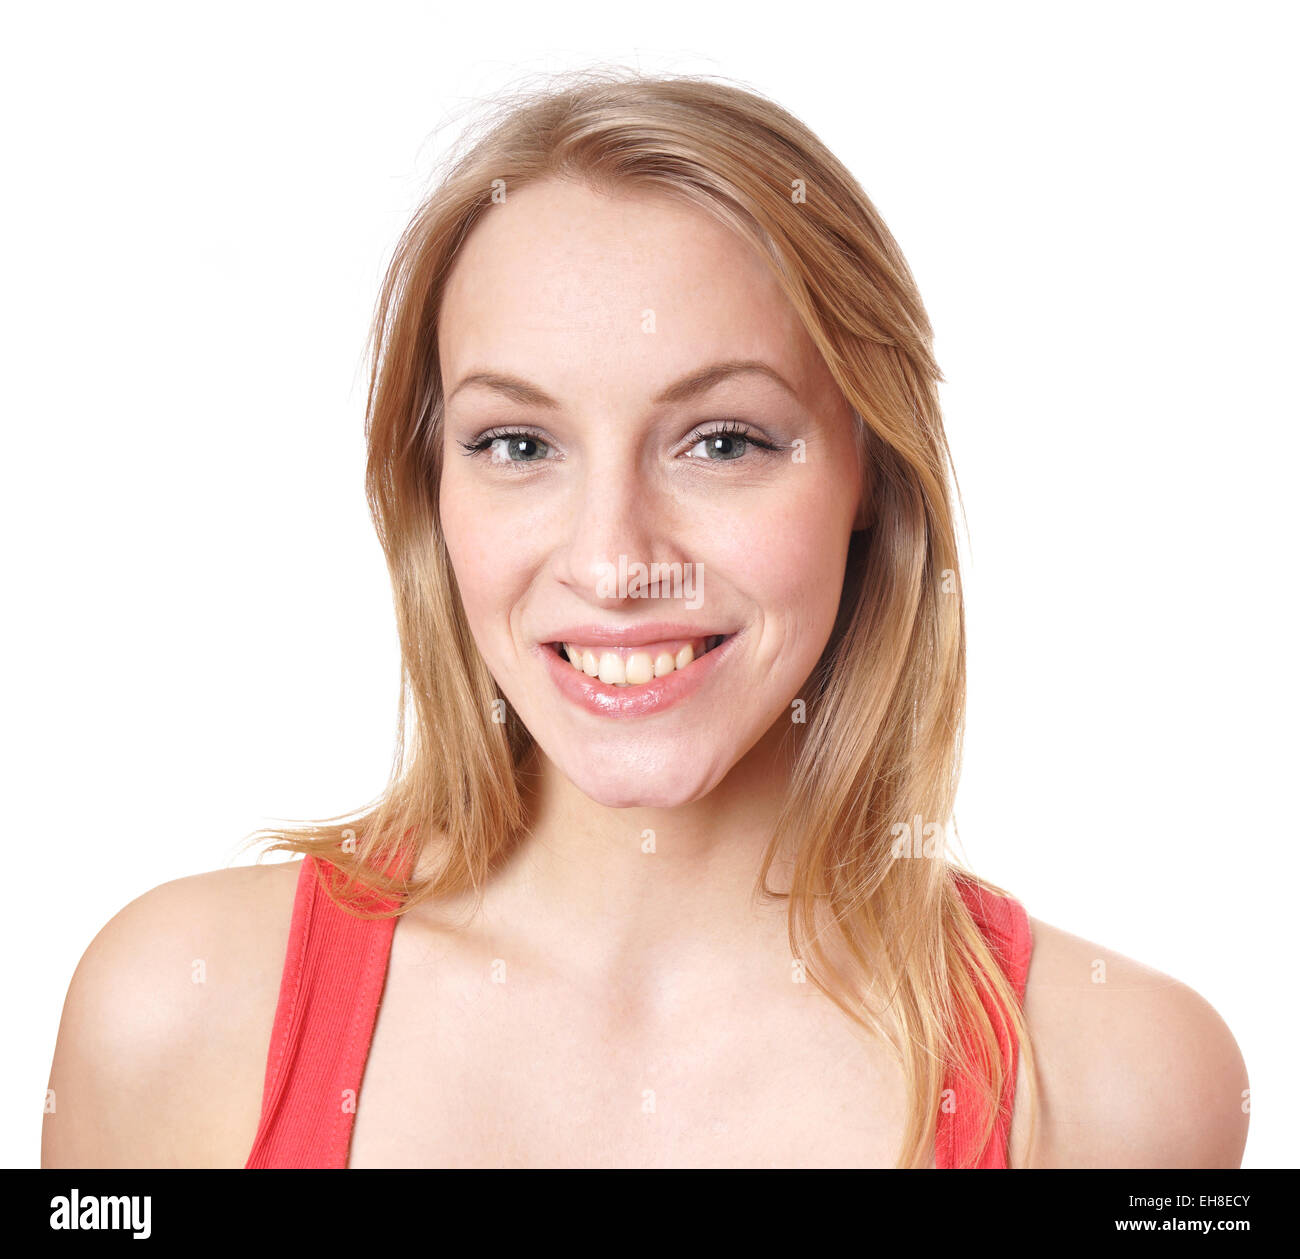 happy young woman - Stock Image